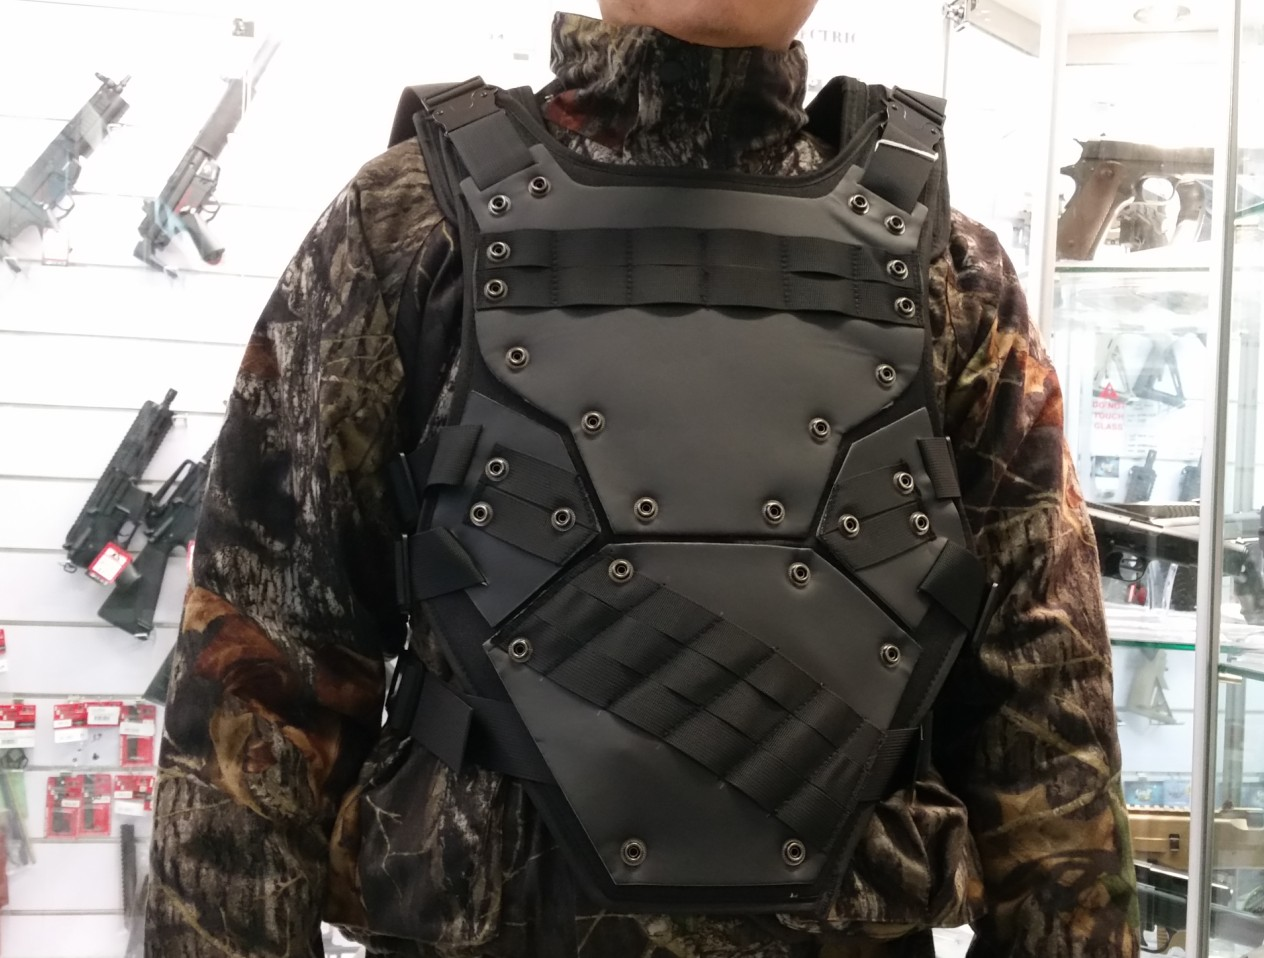 TF3 Type Tactical Foam Vest - Black